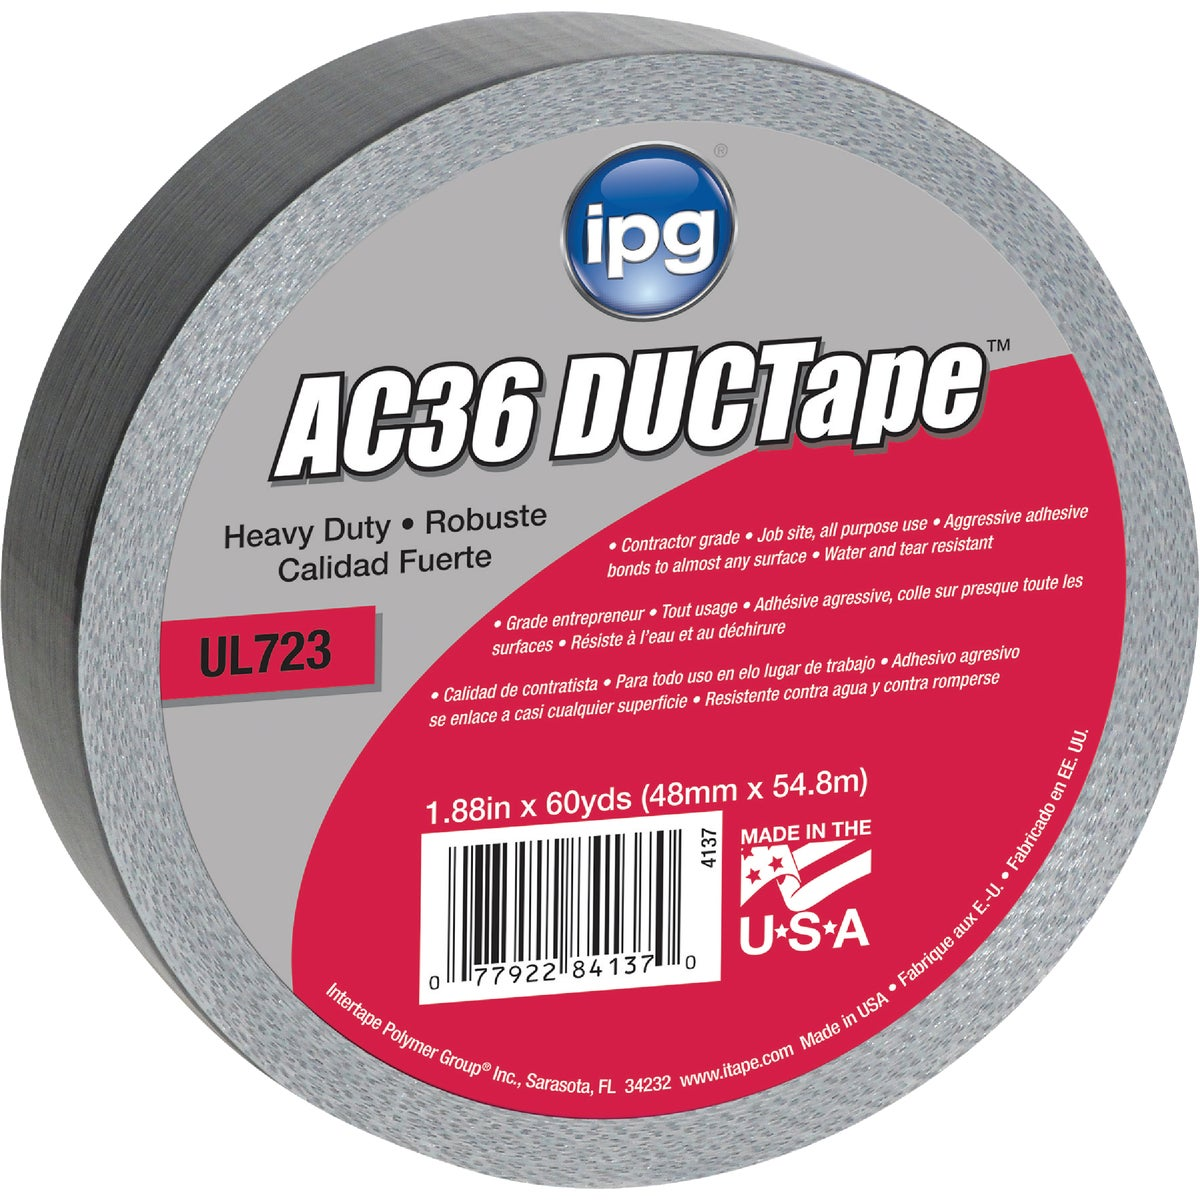 60YD ANCHOR36 DUCT TAPE - 84137 by Intertape Polymer